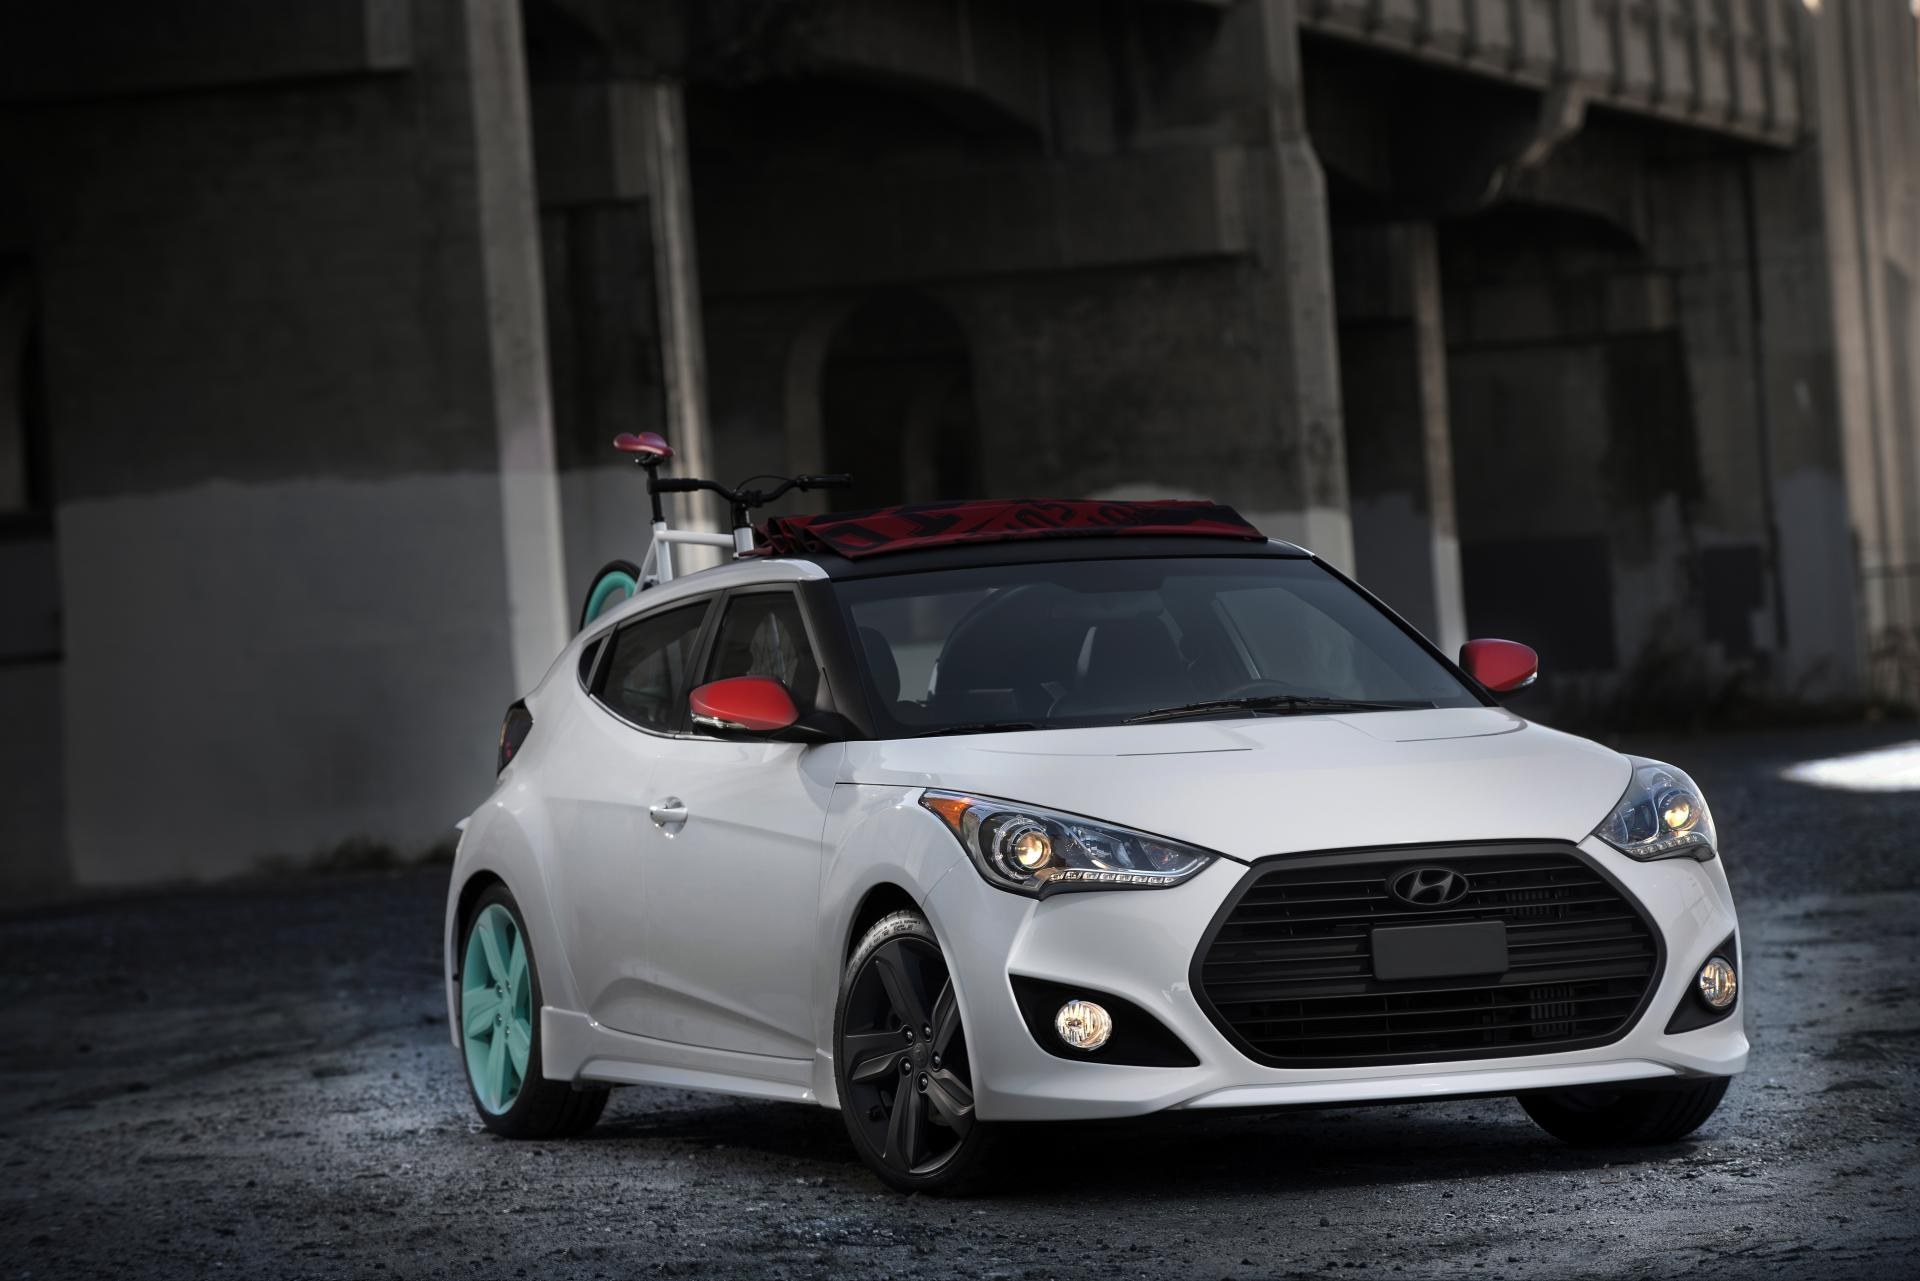 2013 Hyundai Veloster C3 Roll Top Concept News And Information, Research,  And History